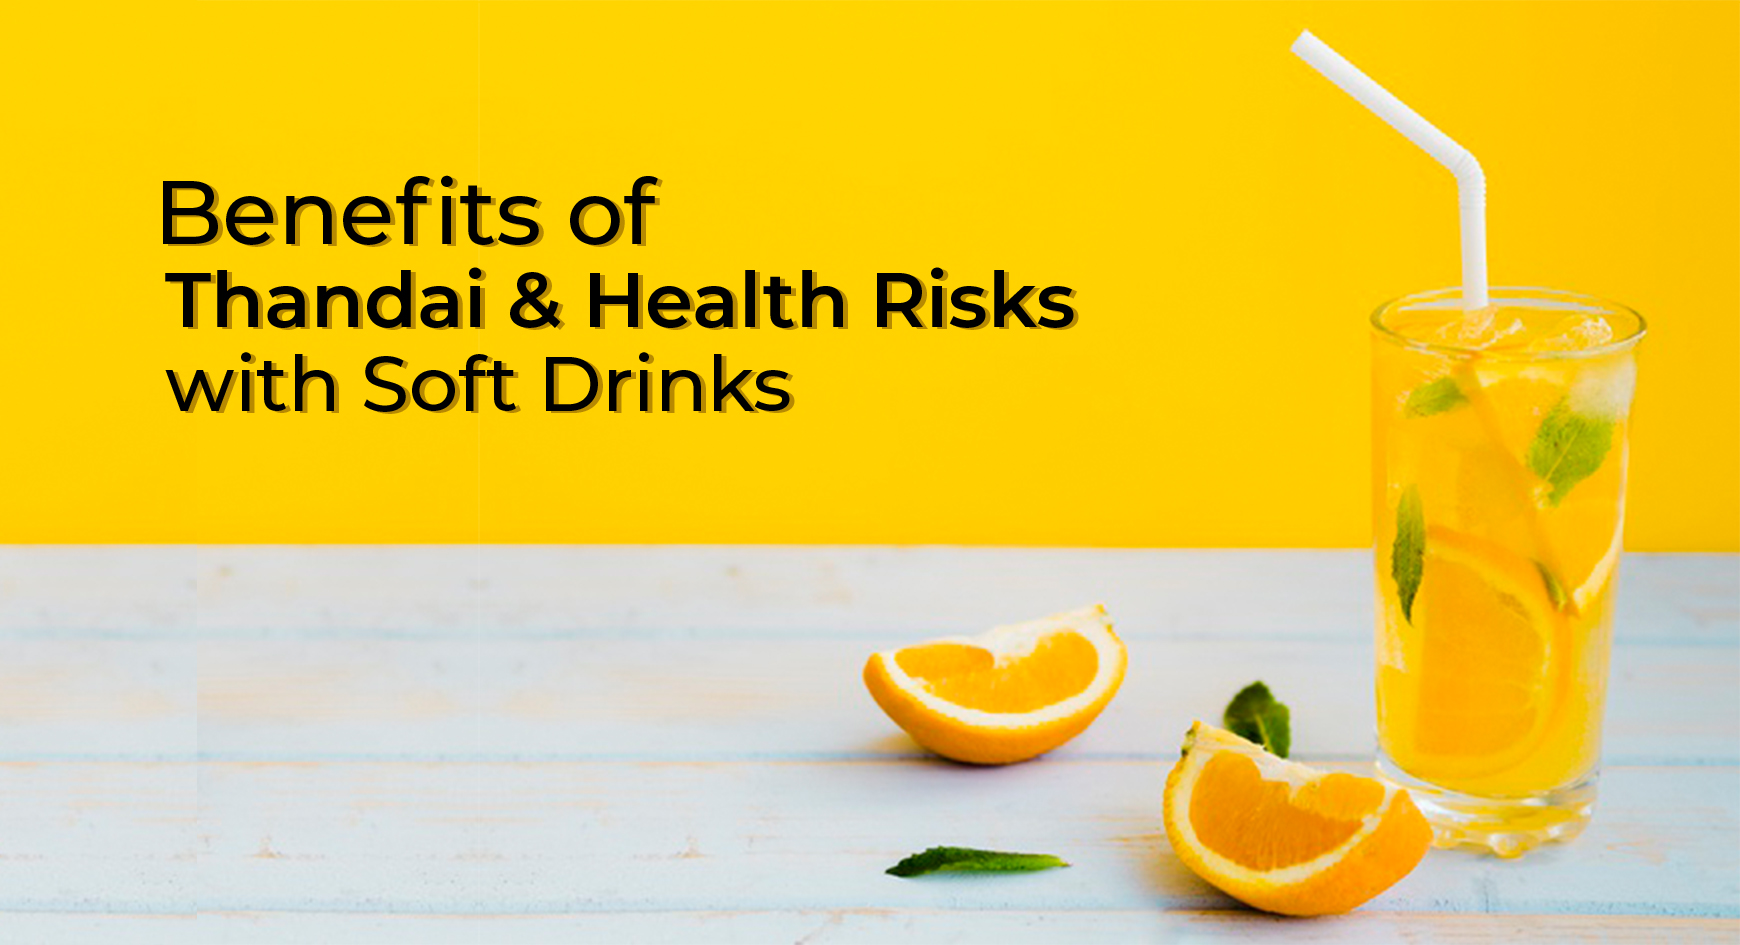 Benefits of Thandai and Health Risks with Soft Drinks